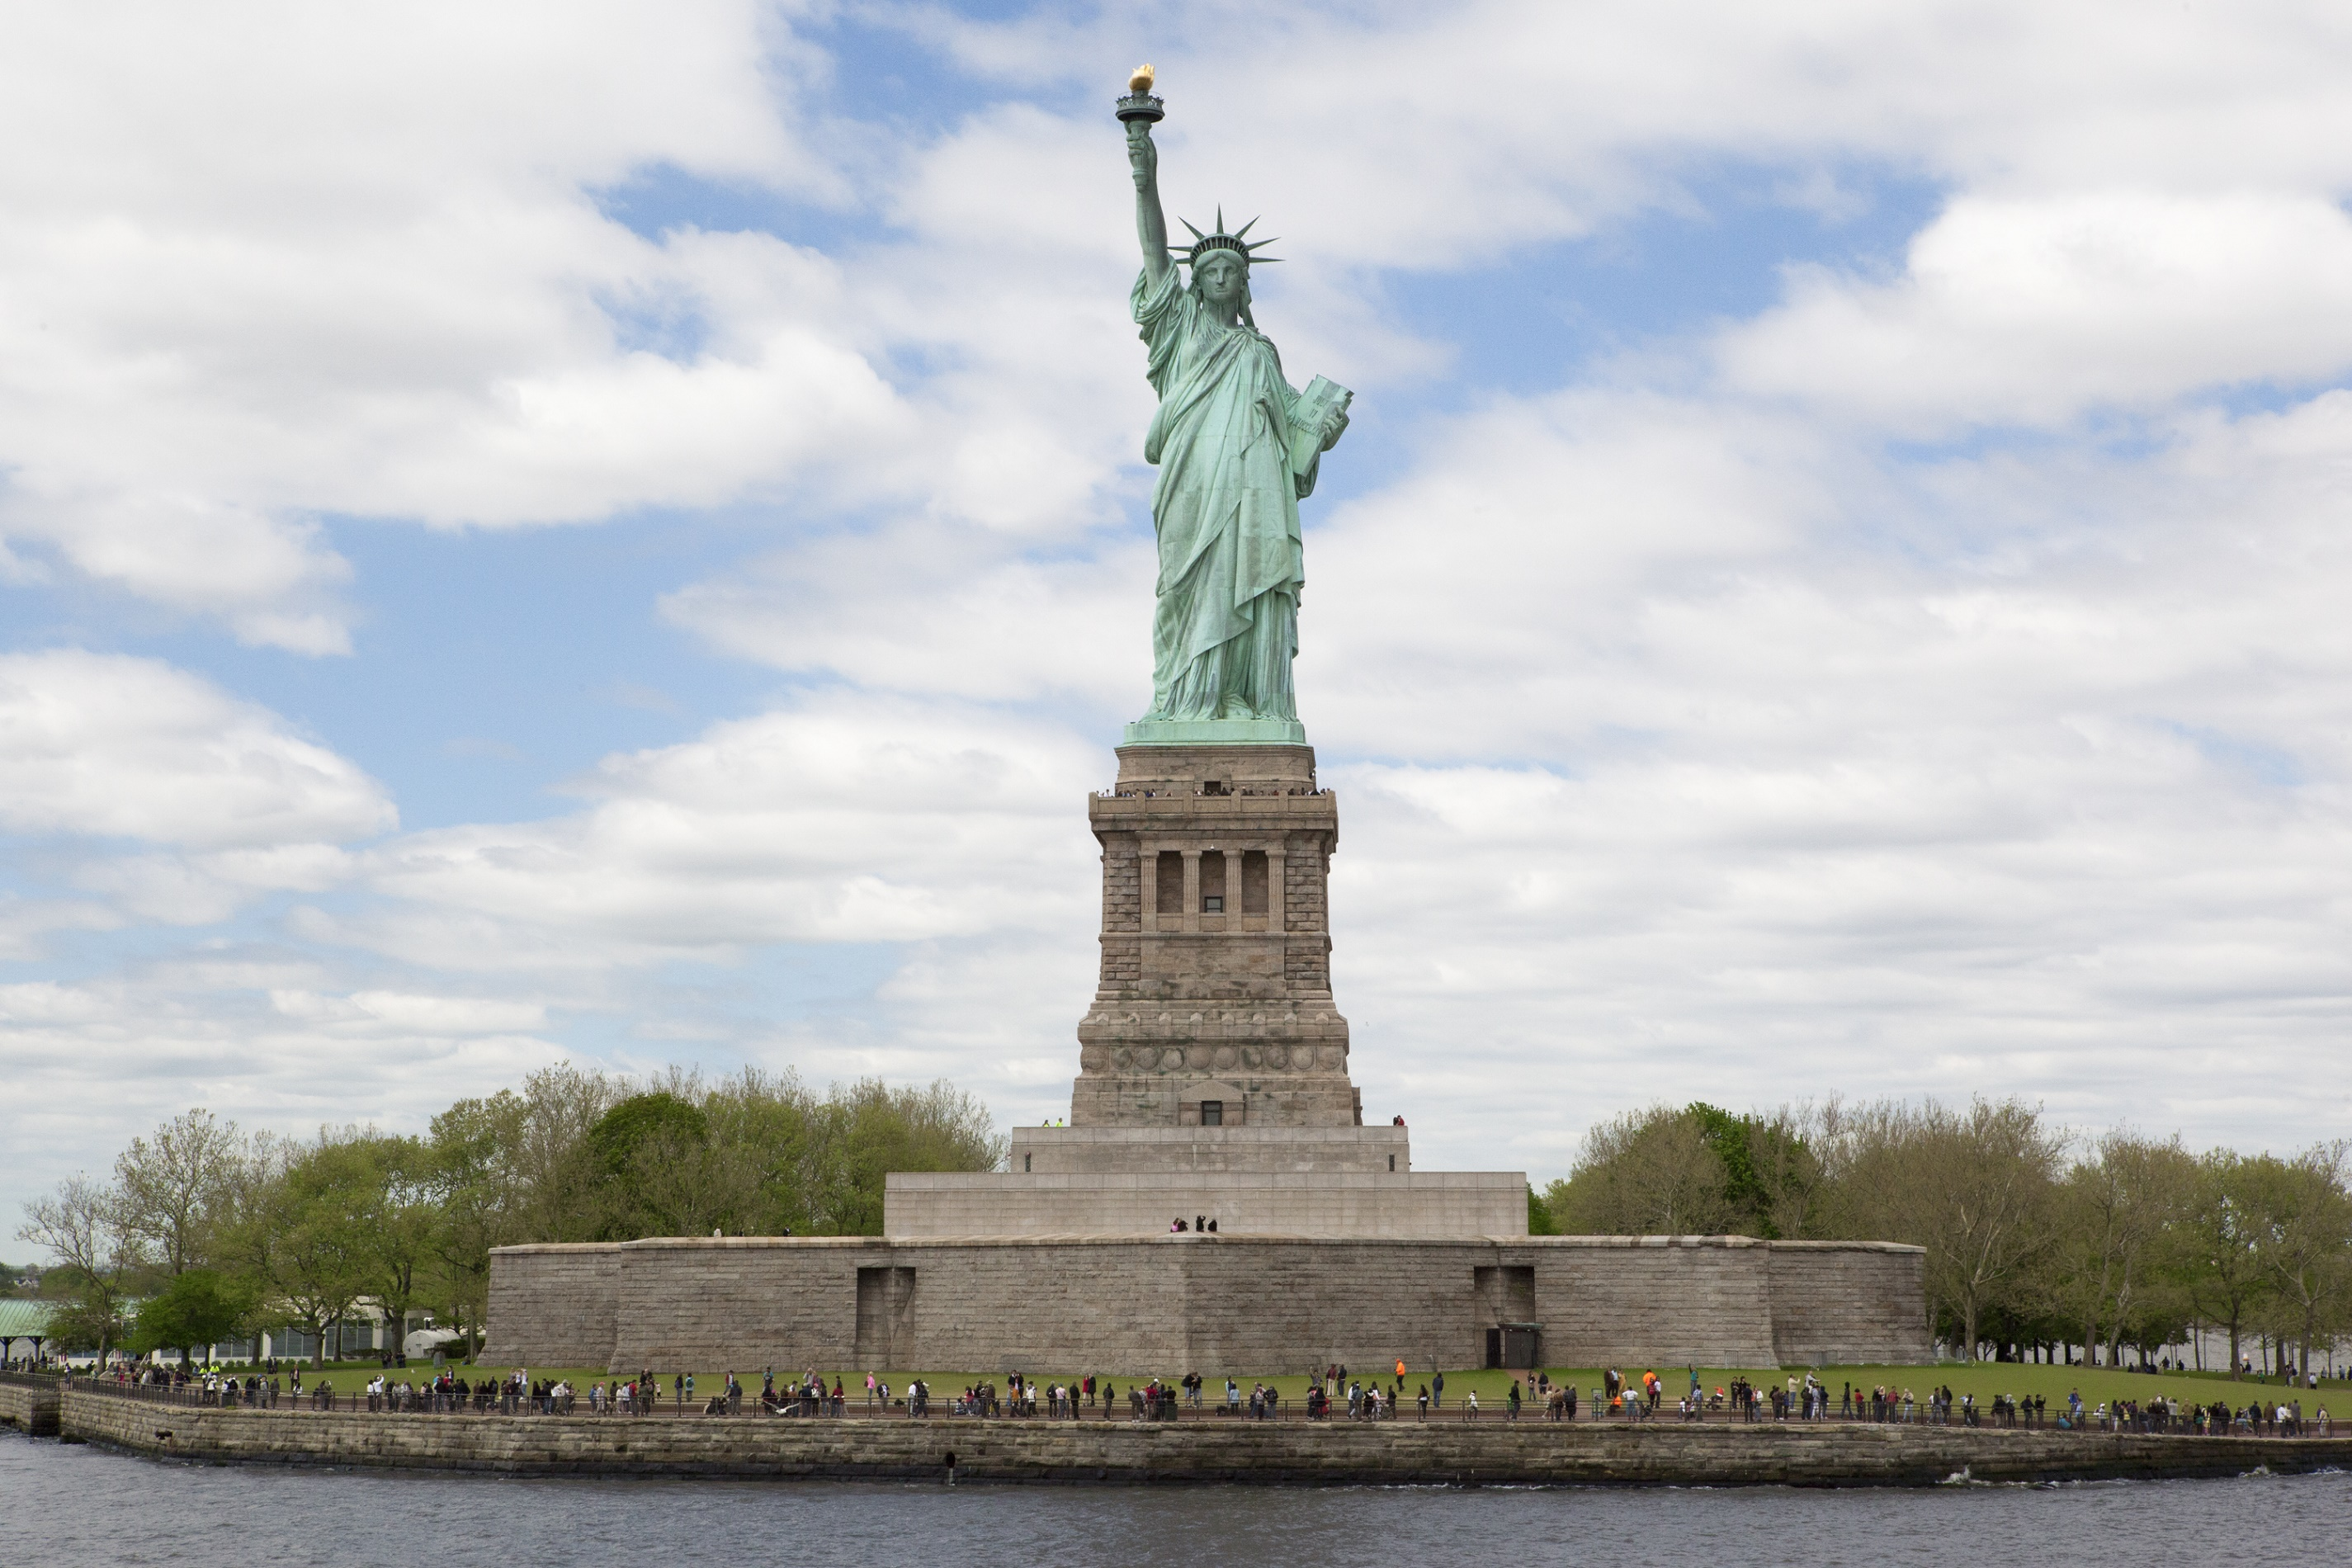 Statue of Liberty on Liberty Island